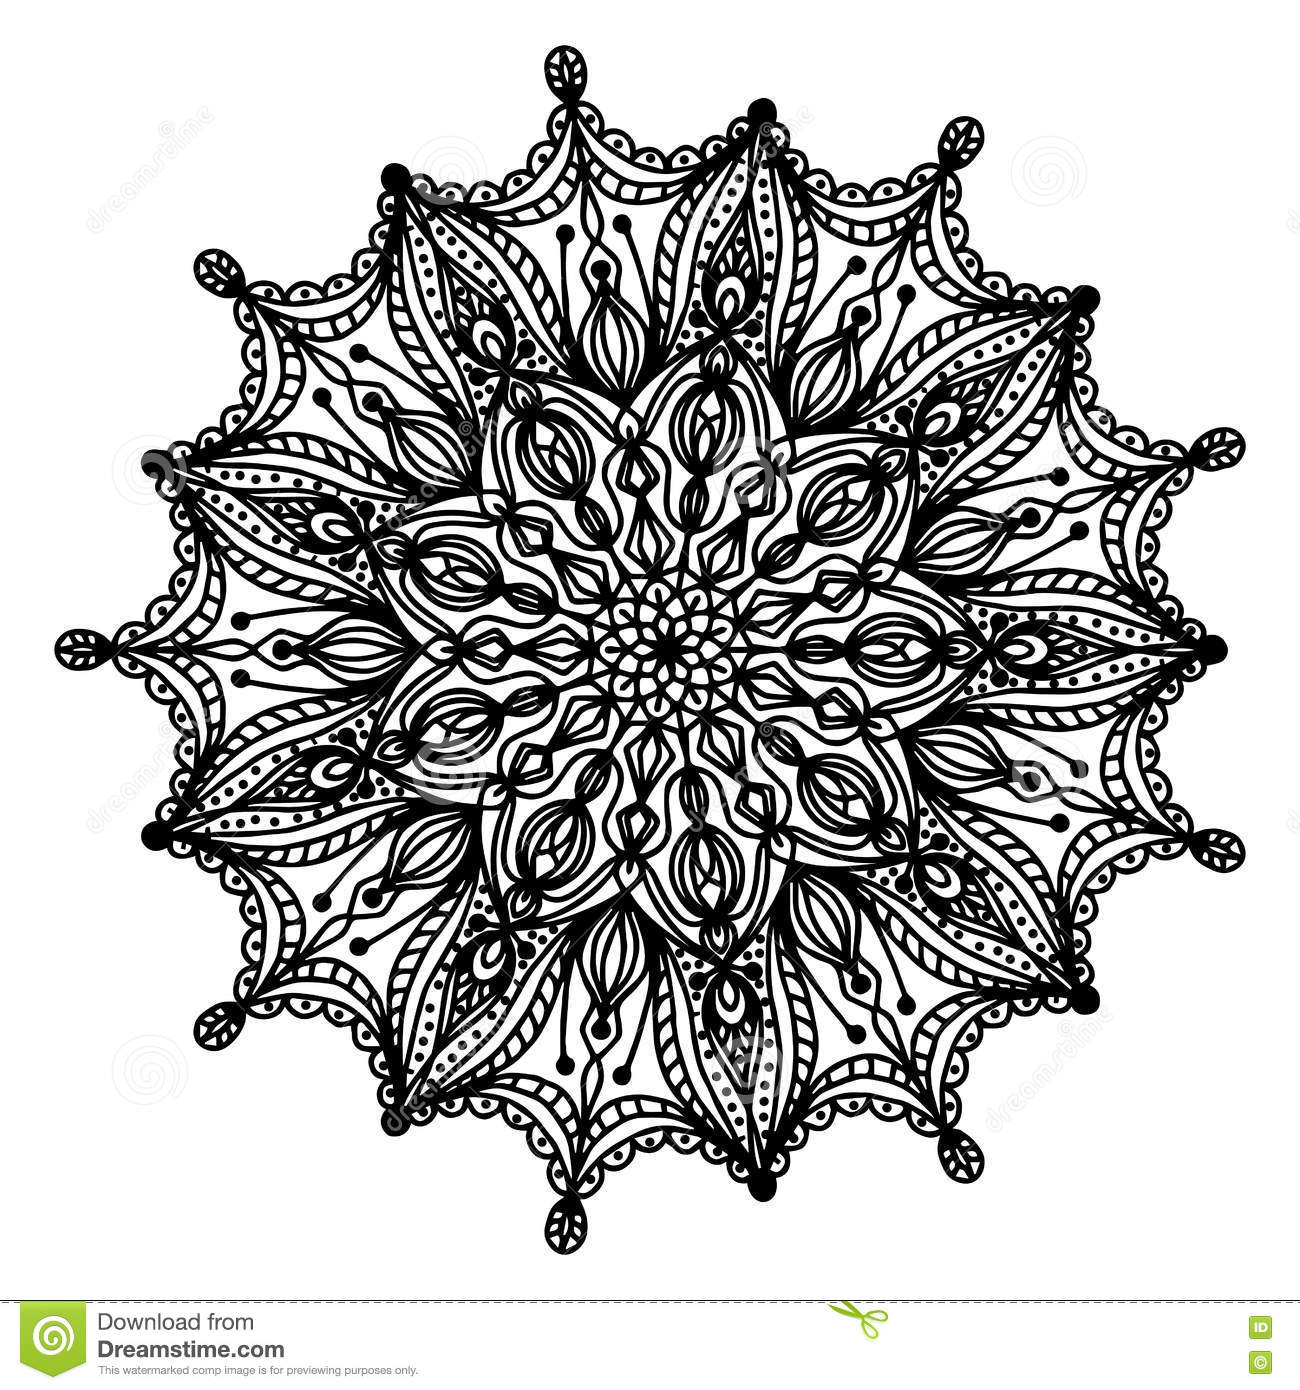 Mandala Coloring Page Doodle Stock Vector Illustration Of White